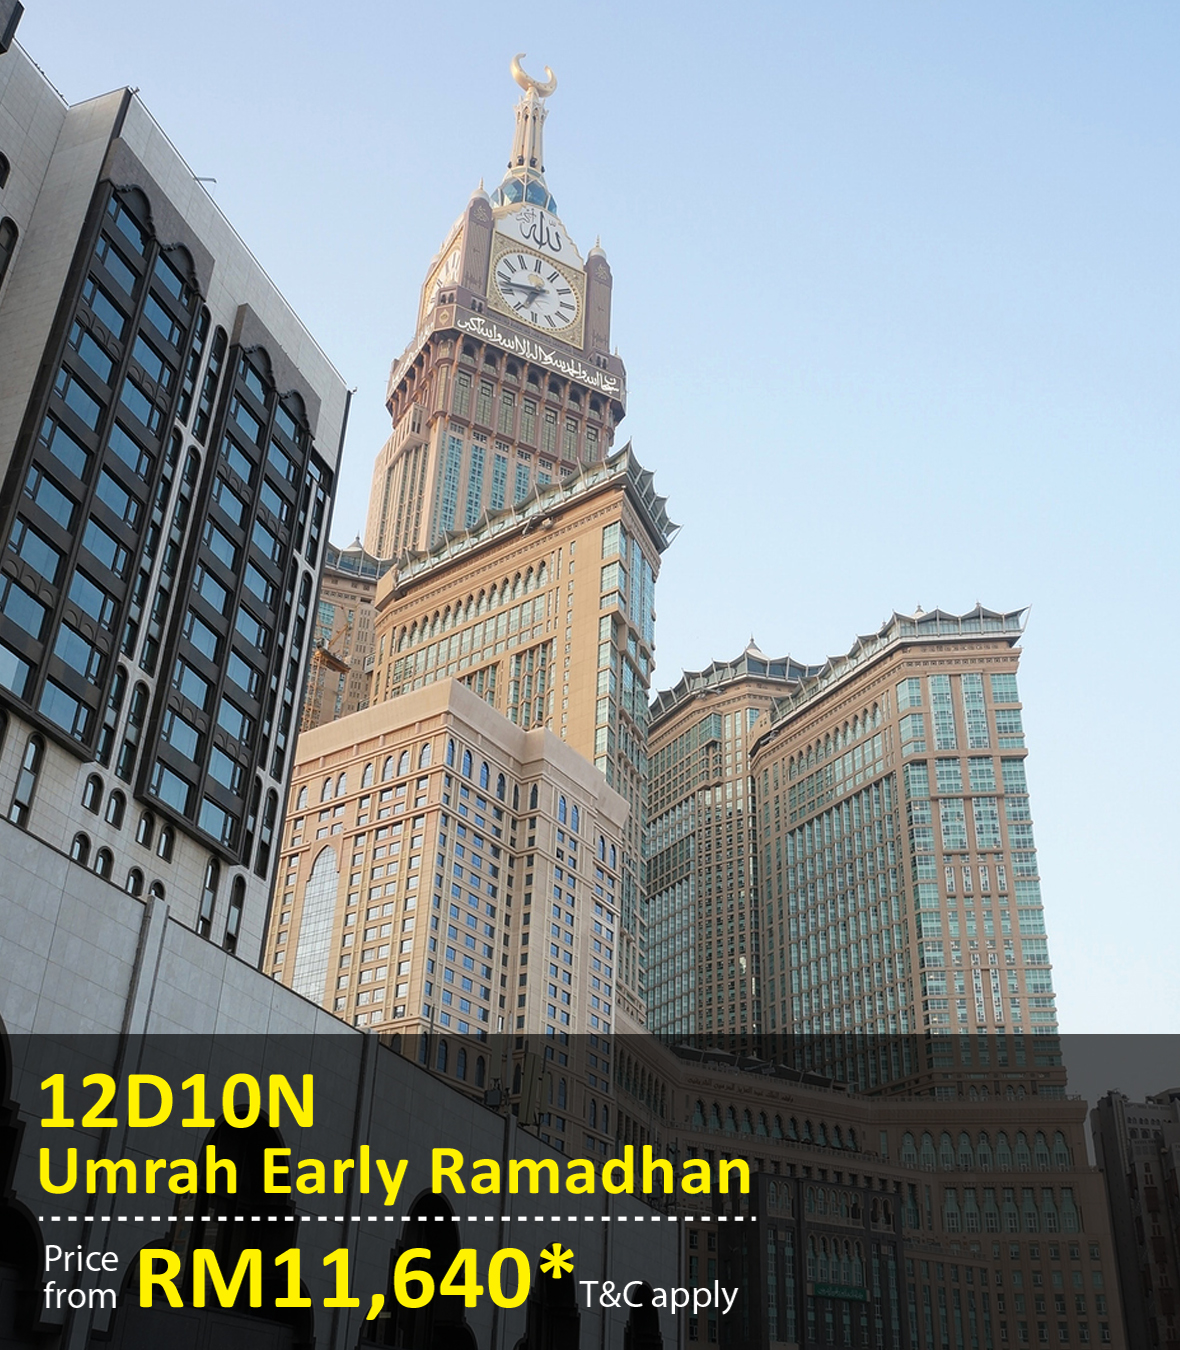 UOB Special Promo Package: 12 Days 10 Nights Umrah Early Ramadhan